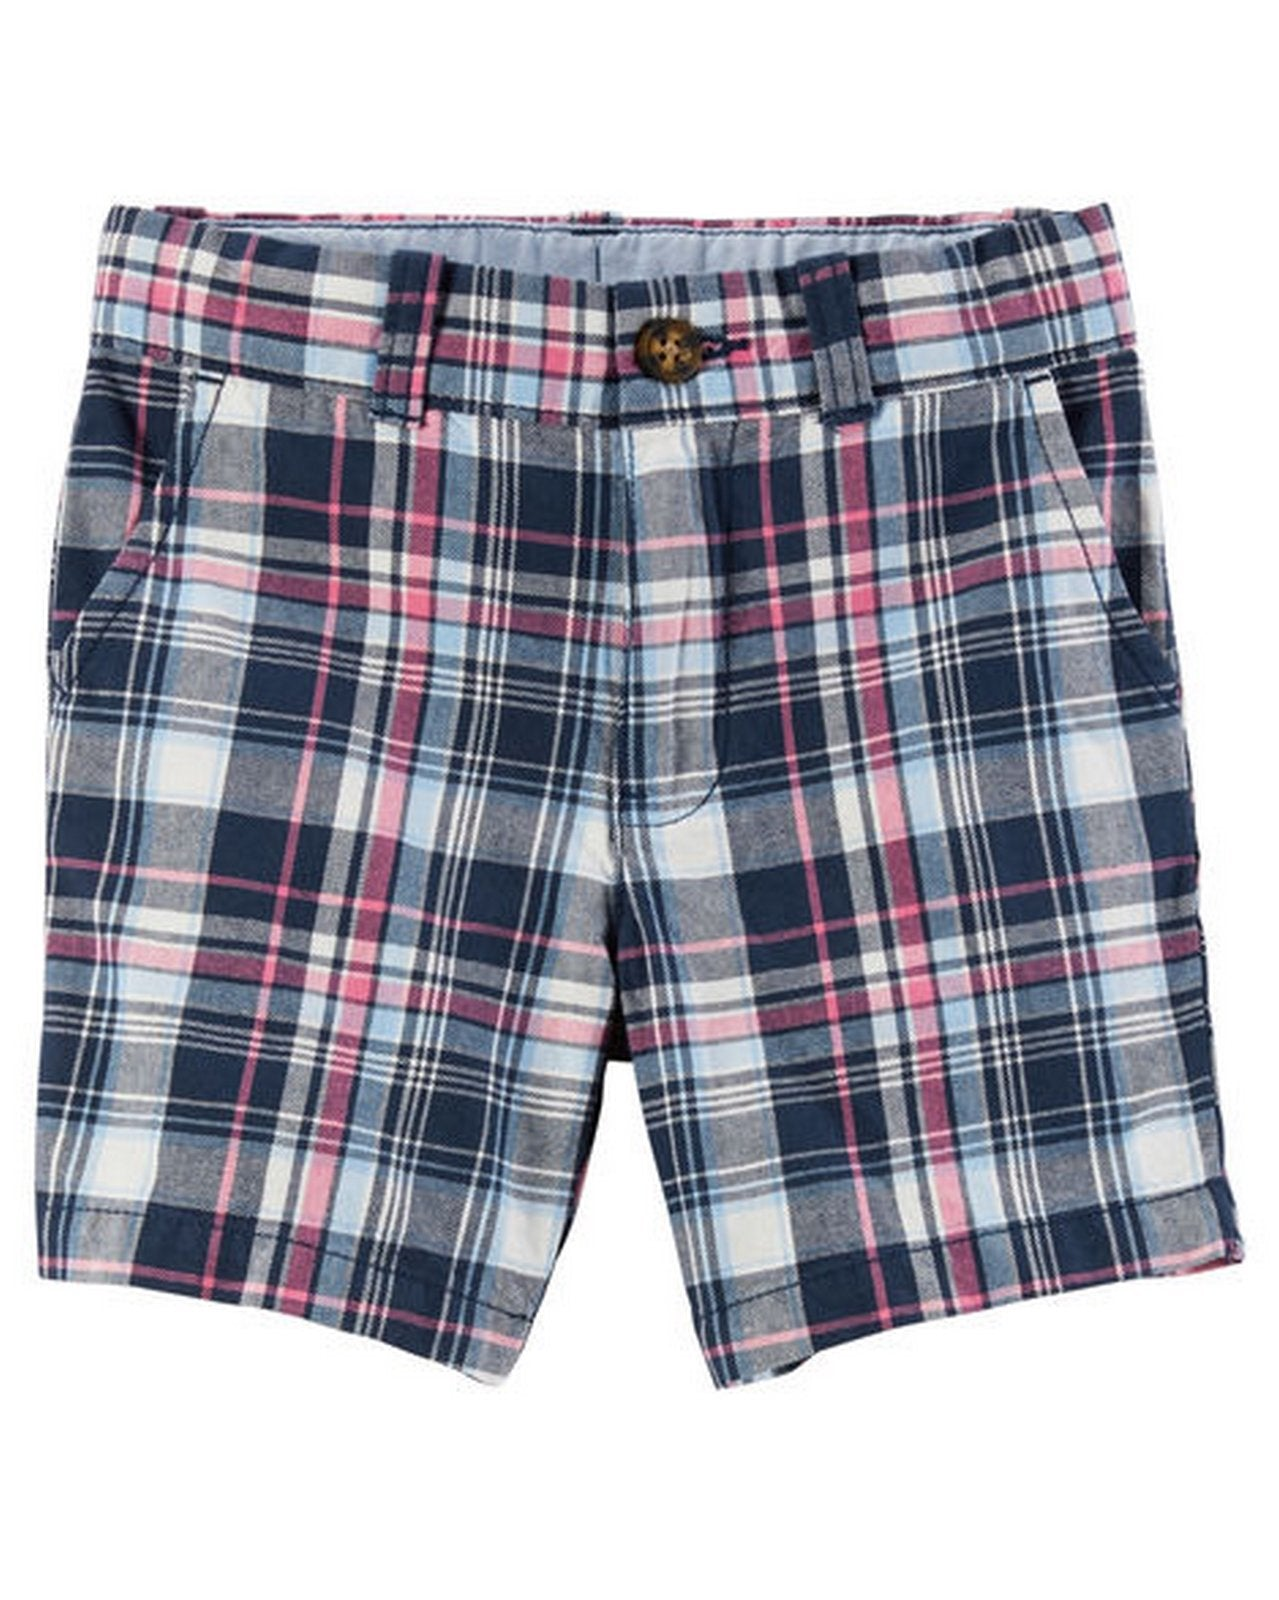 Carter's  Plaid Flat-Front Twill Shorts  Modelo 268G361